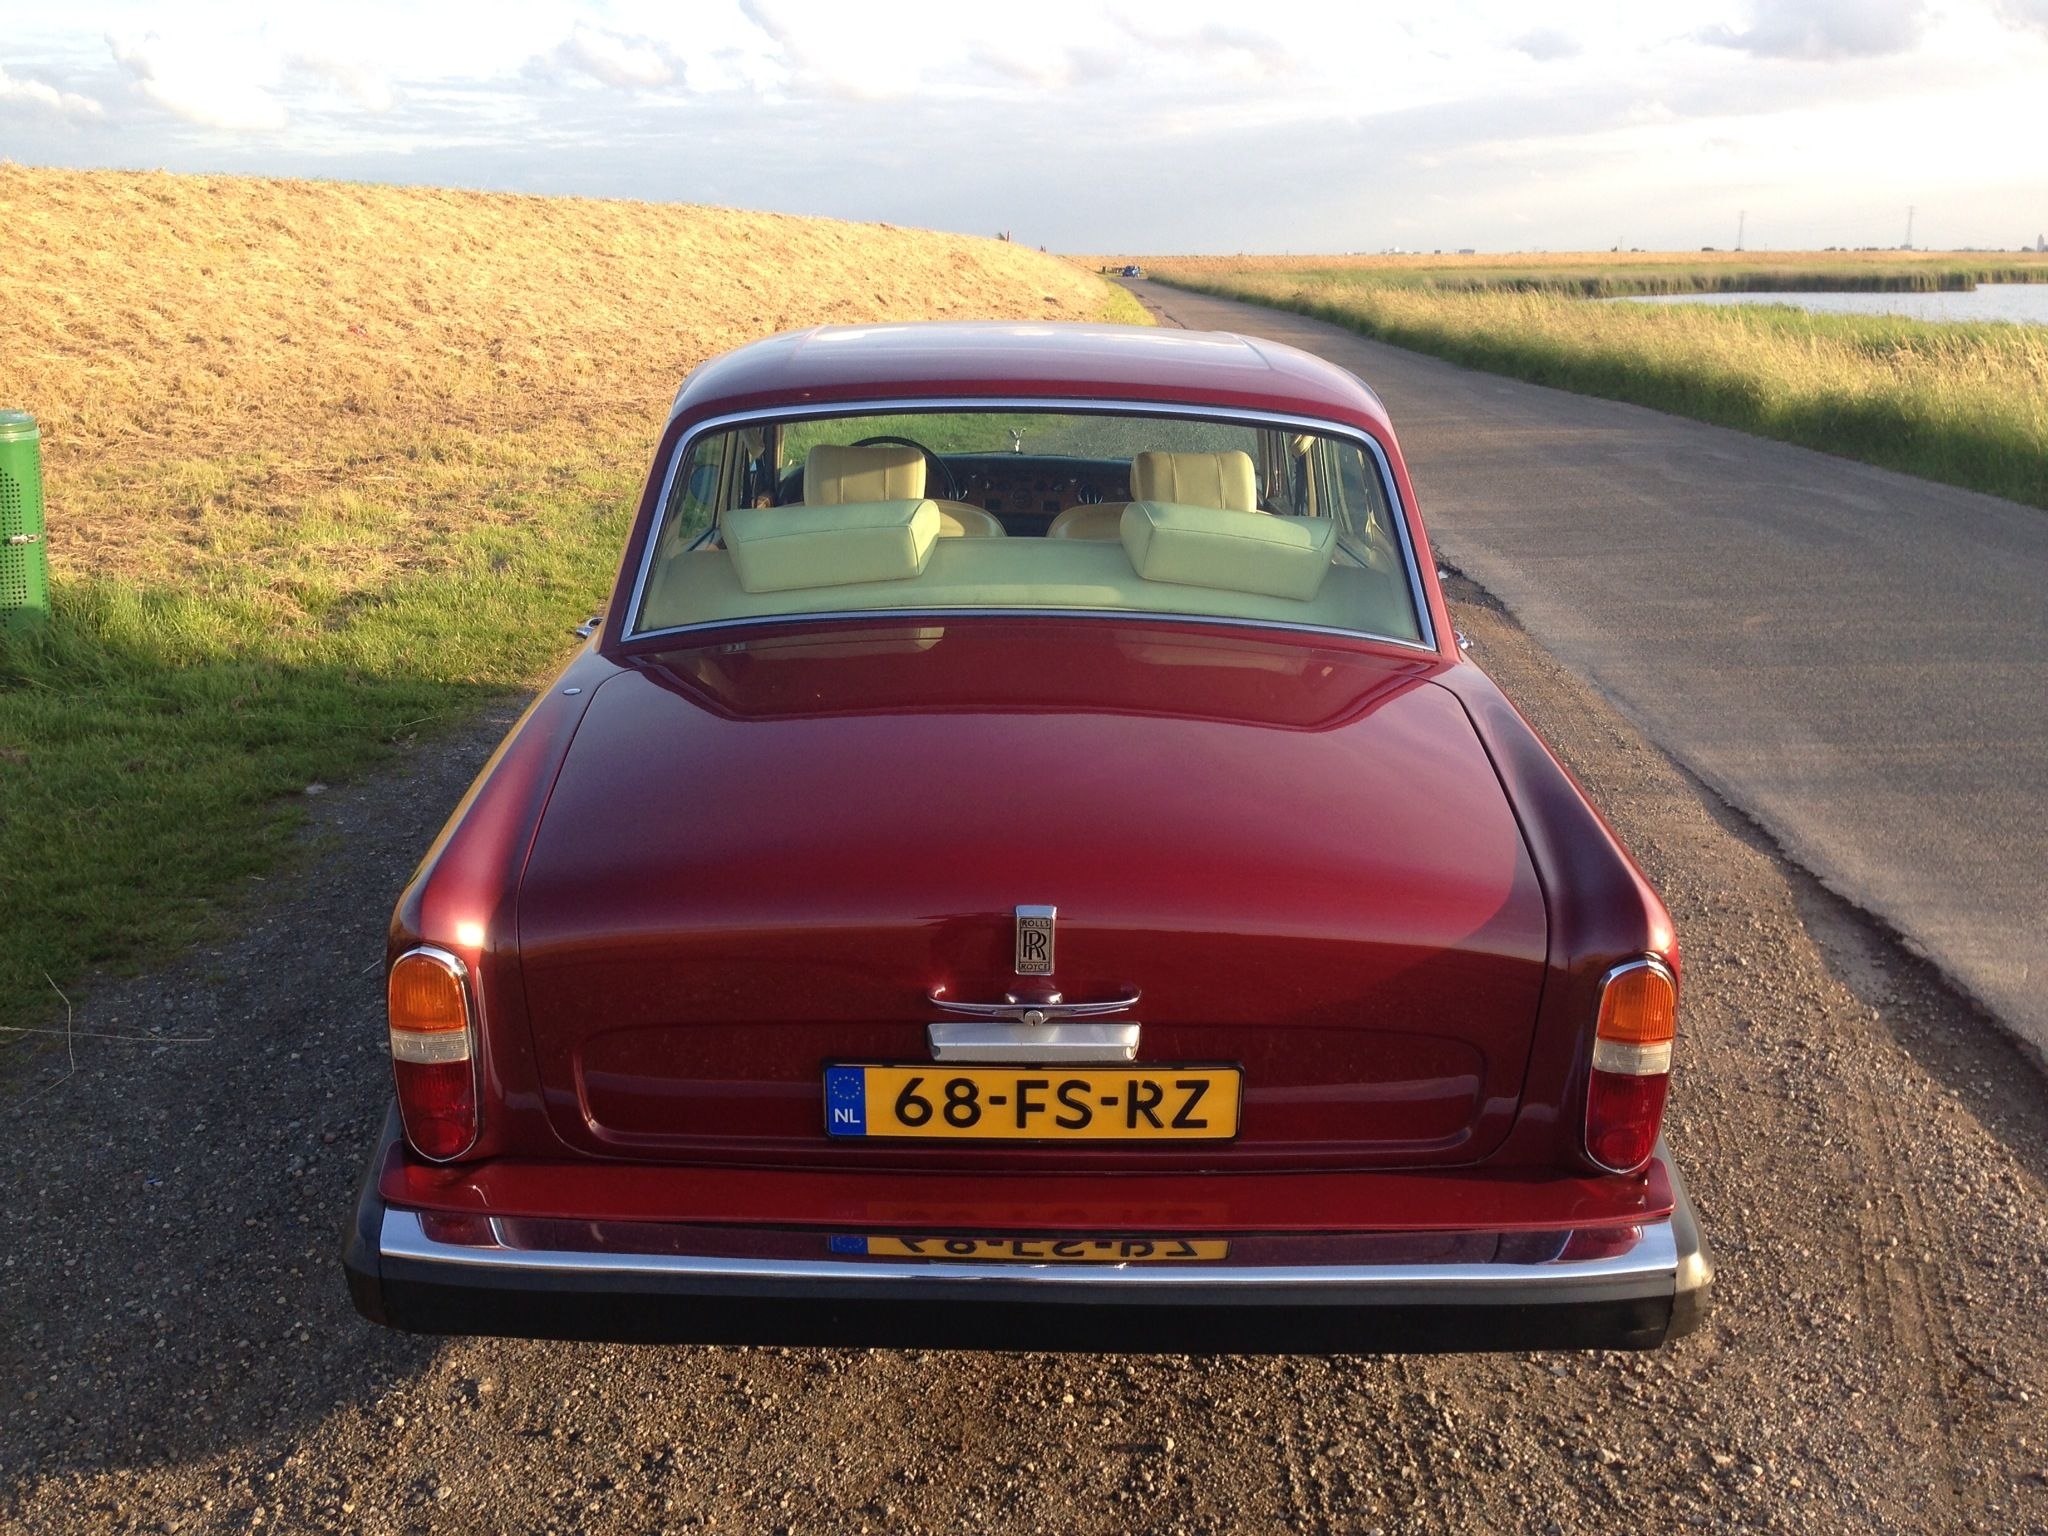 Since this week I am the proud owner of this Rolls Royce Silver Shadow